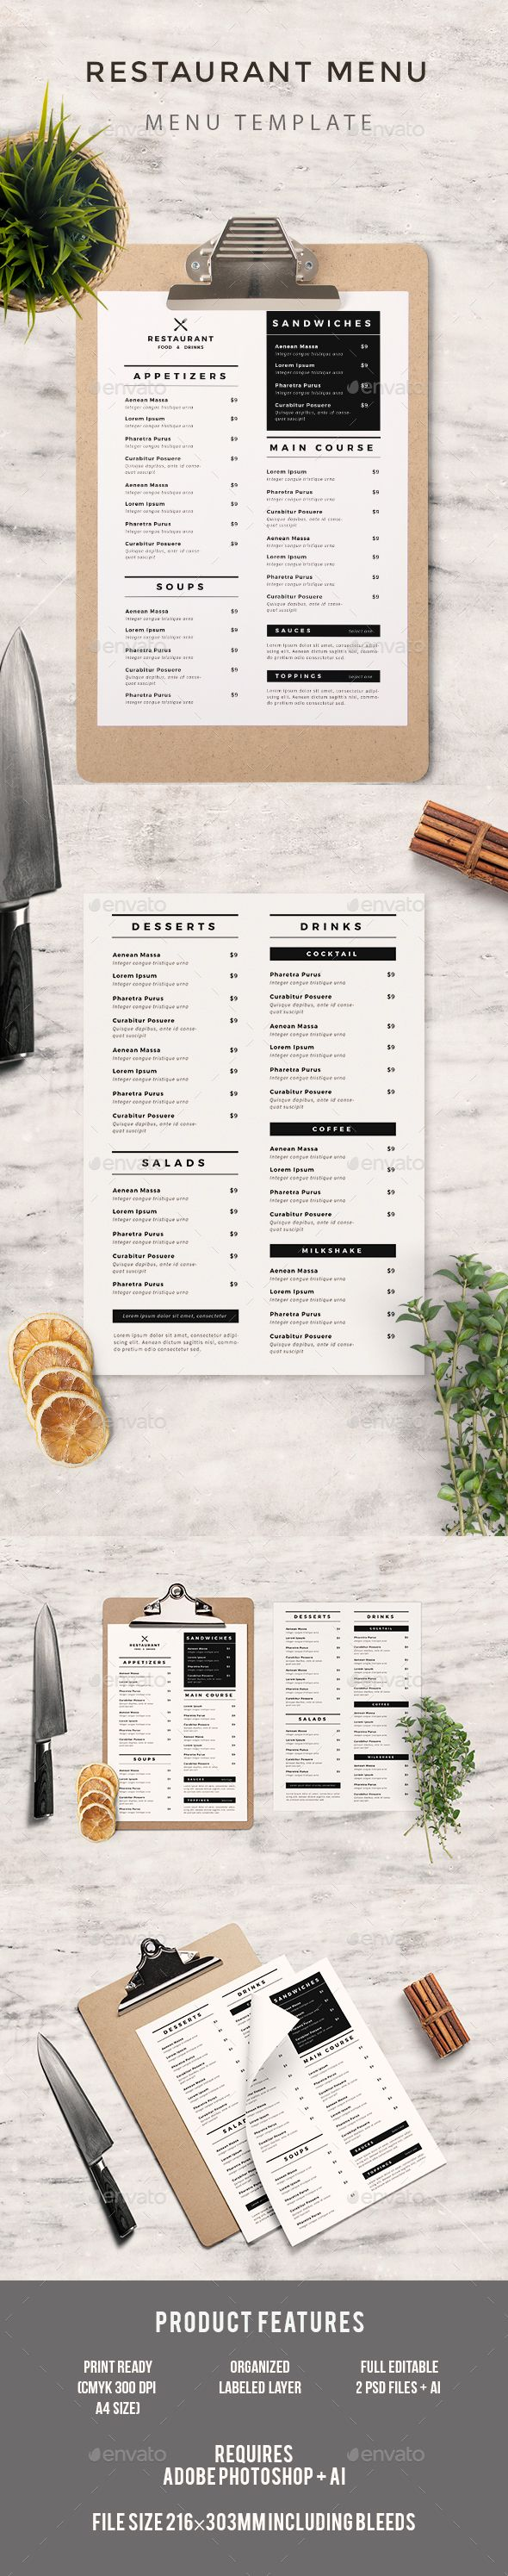 Simple Food Menu | Bar, Camas y Sueños